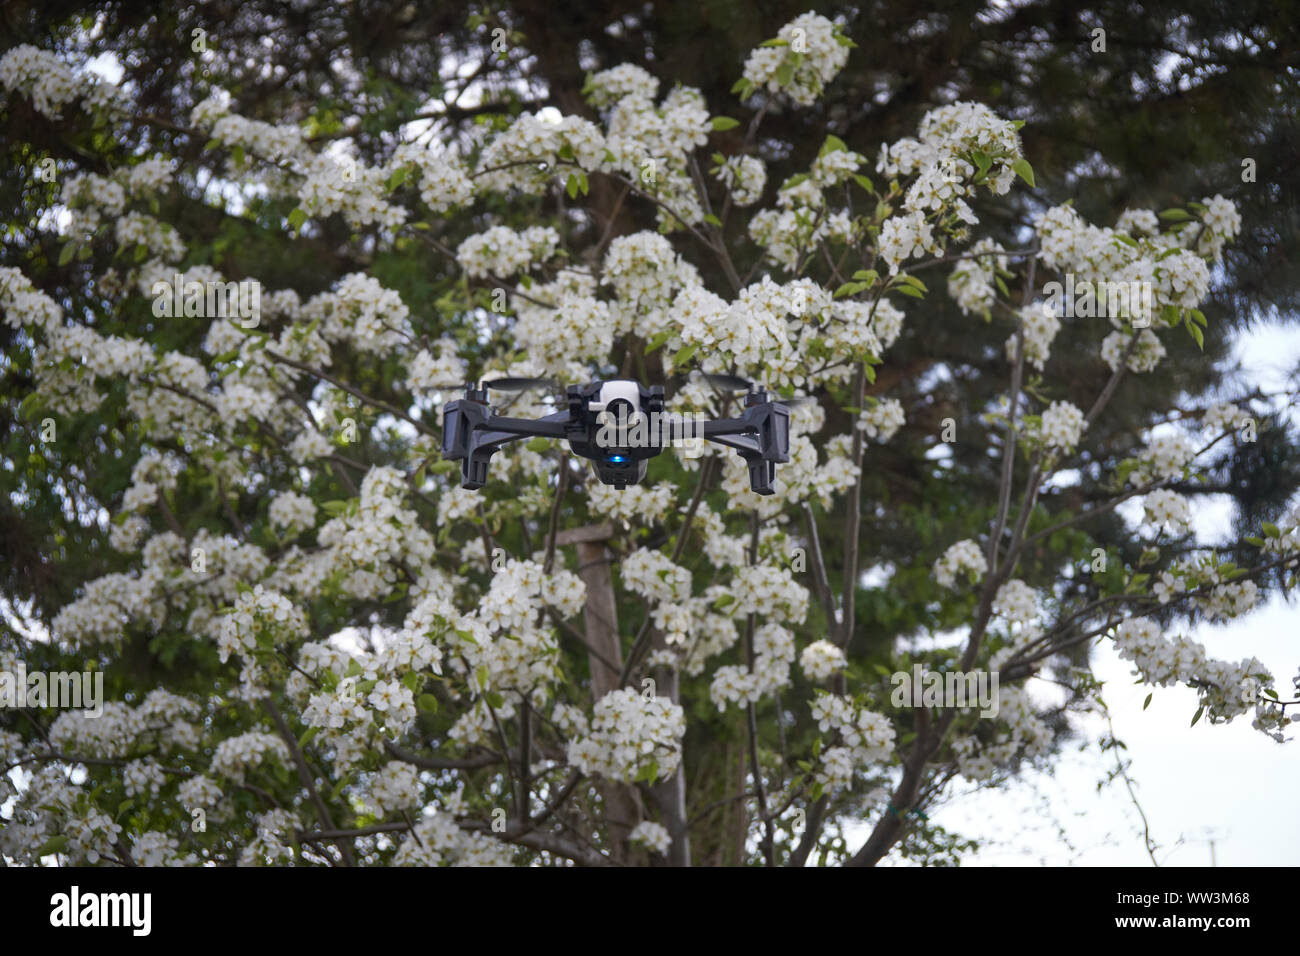 drone flying in a pear tree in the bloom Stock Photo